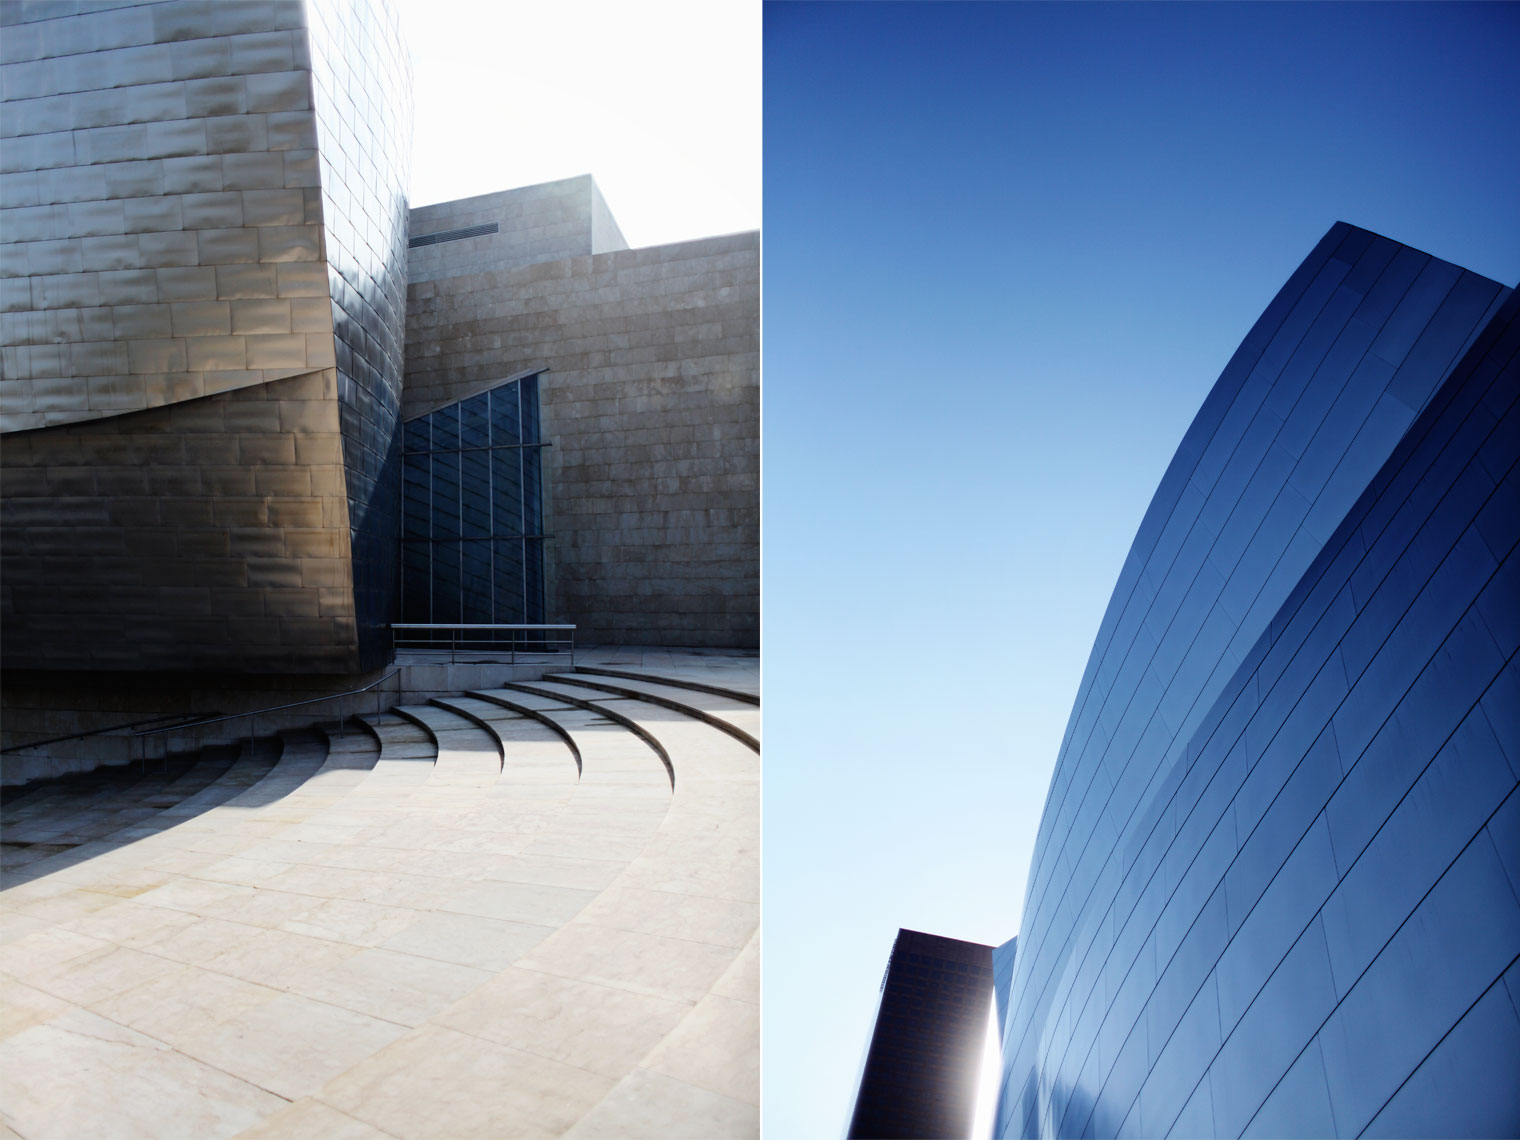 peggy-wong-photography_pwtravelogue_9122_guggenheim-bilbao_7914_walt-disney-concert-hall-los-angeles